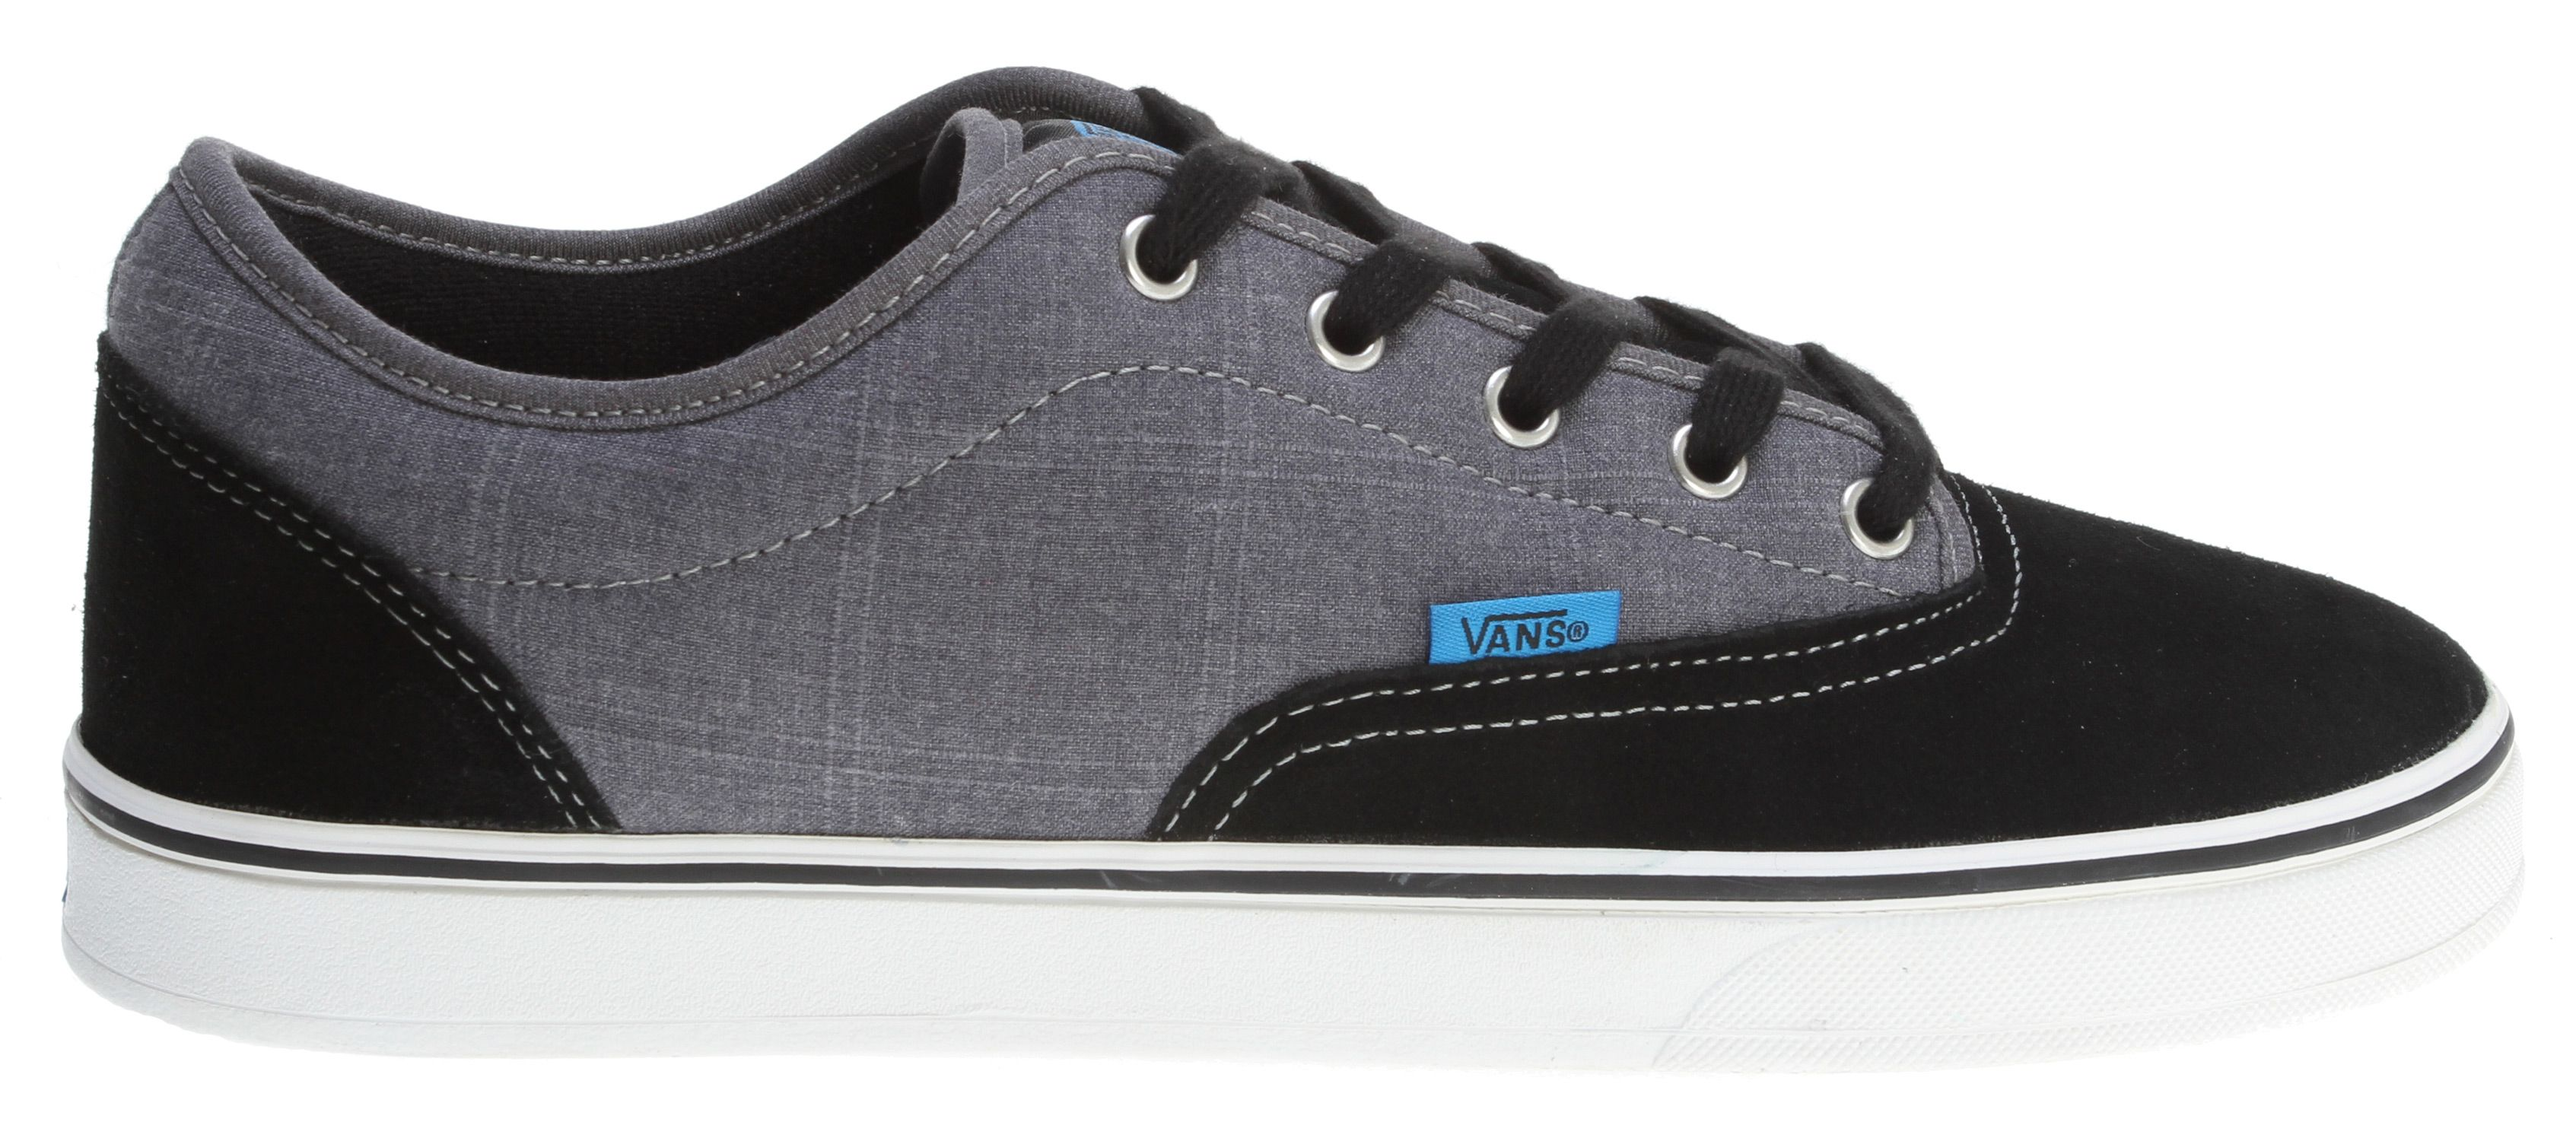 7a23f57f3a Vans AV Era 1.5 Skate Shoes Black Grey Chambray - Men s